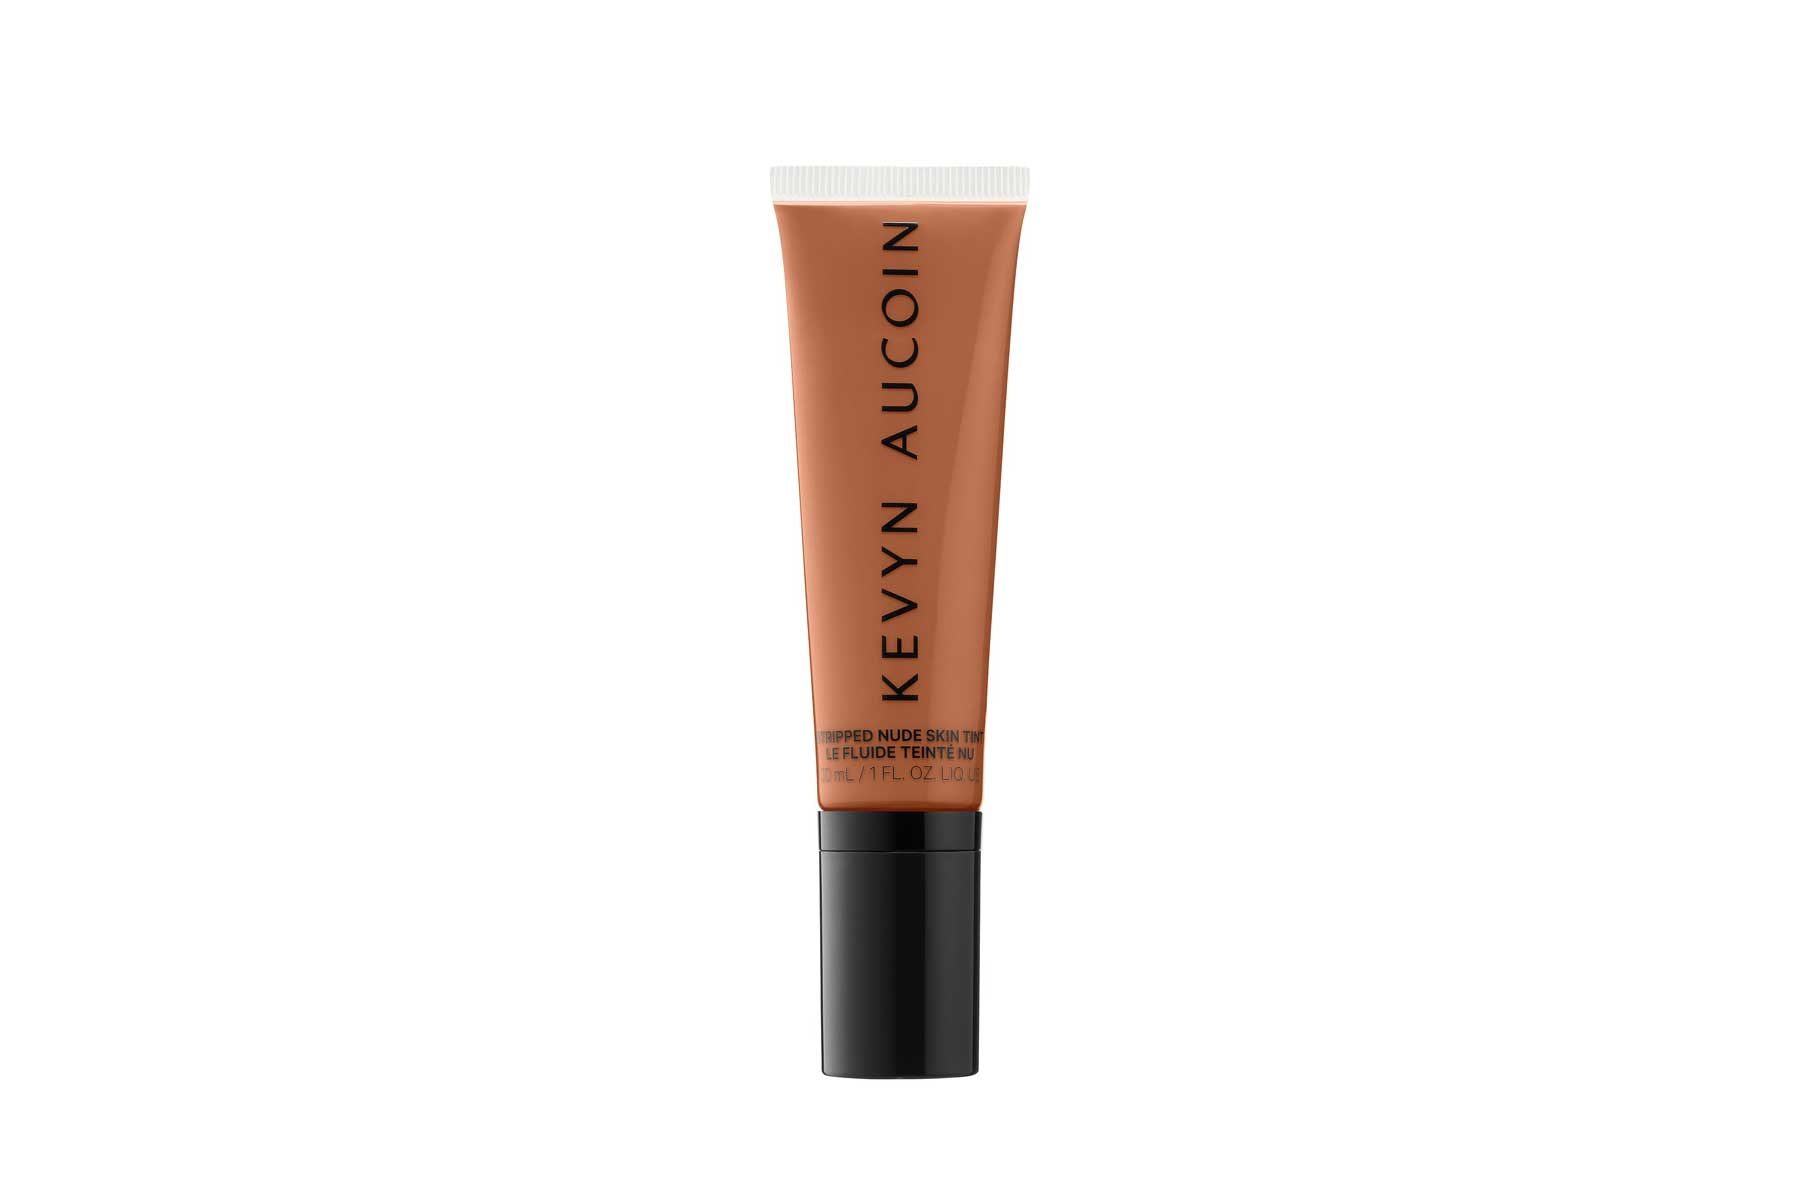 Product image of Kevyn Aucoin's Stripped Nude Tint